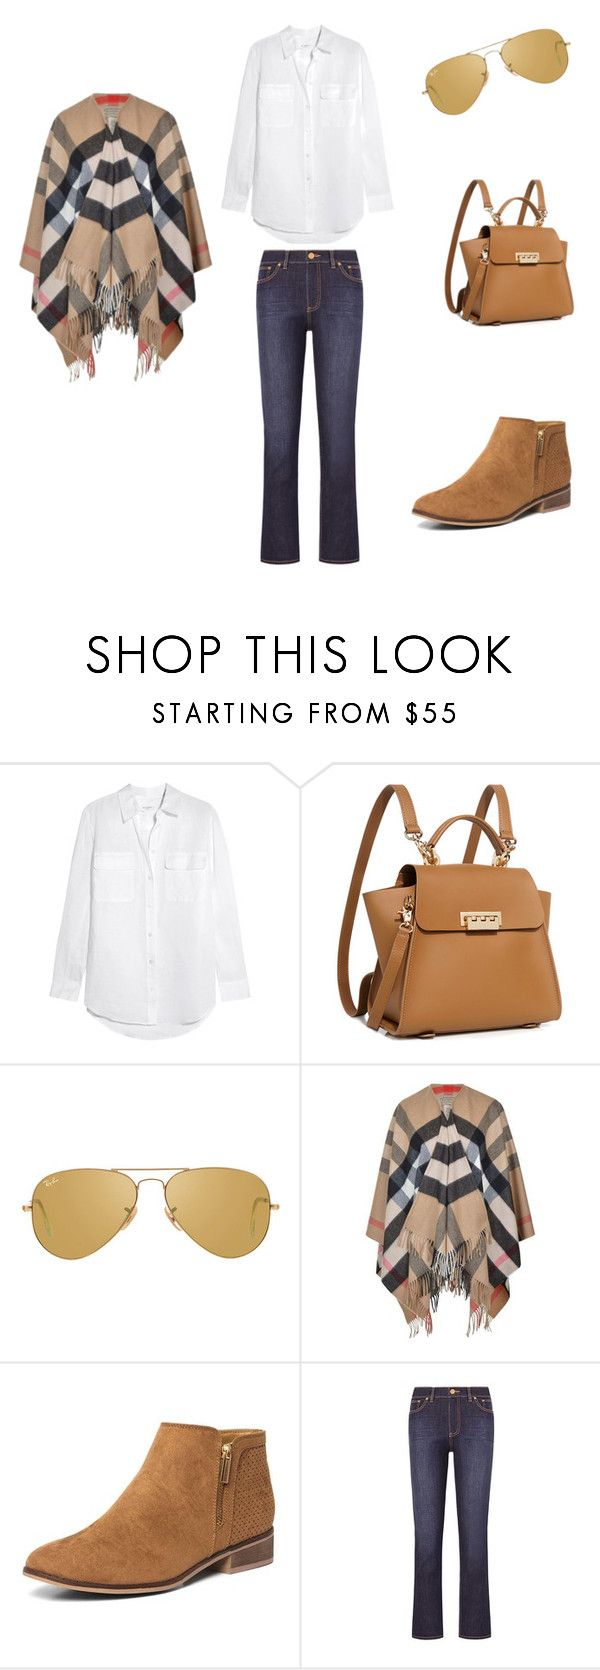 """""""Clasica, dia de campo (60)"""" by jesica-cropanese on Polyvore featuring moda, Equipment, ZAC Zac Posen, Ray-Ban, Burberry, Dorothy Perkins y Tory Burch"""